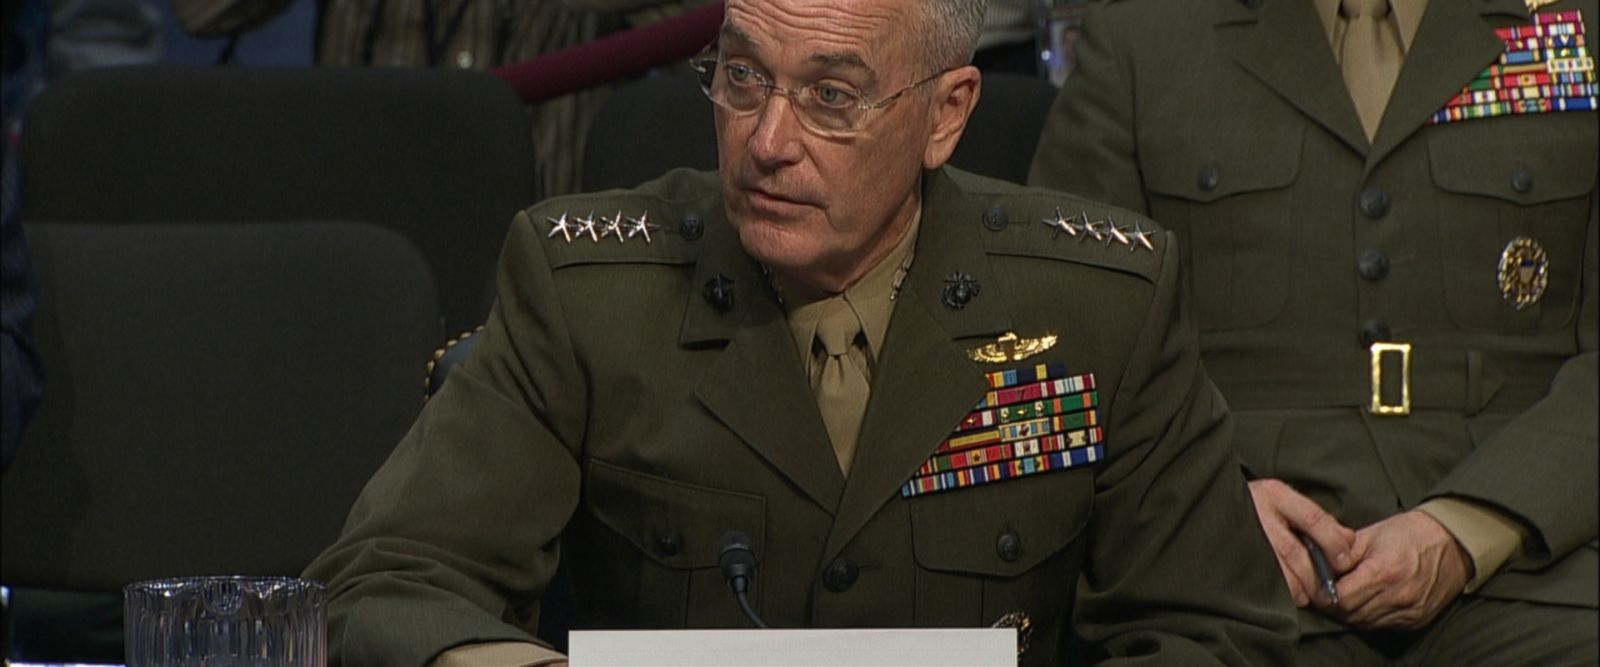 VIDEO: The chairman of the Joint Chiefs of Staff made his comments before the Armed Services Committee.